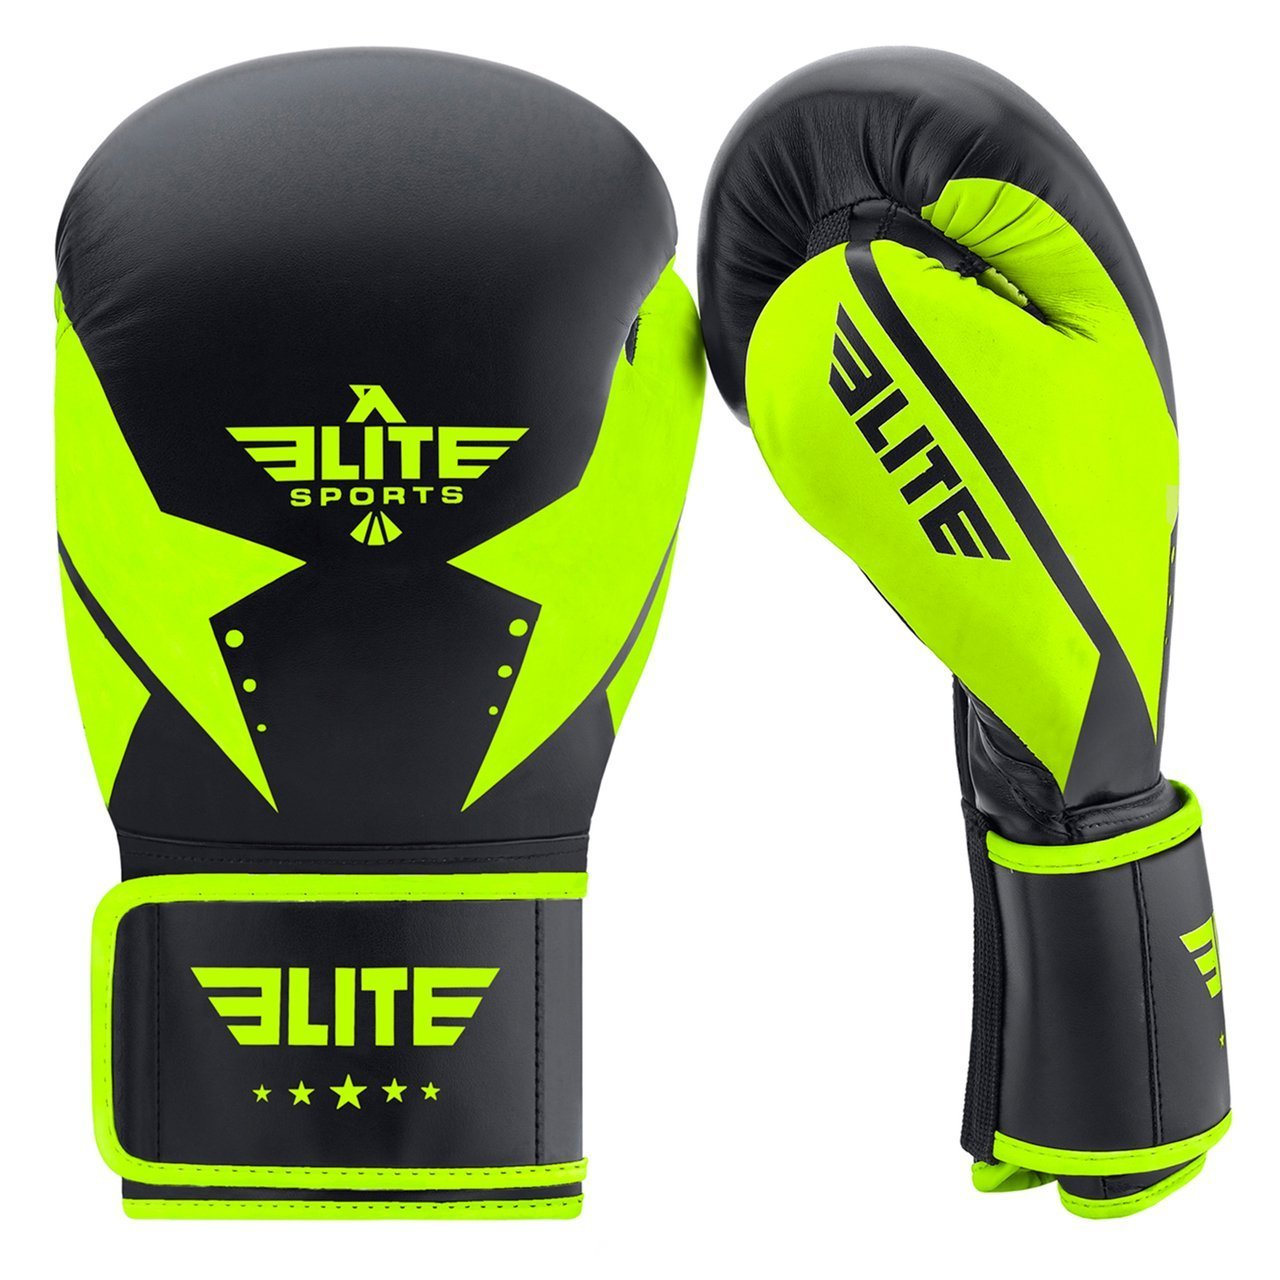 Elite Sports Star Series Black/Hi Viz Adult Boxing Gloves